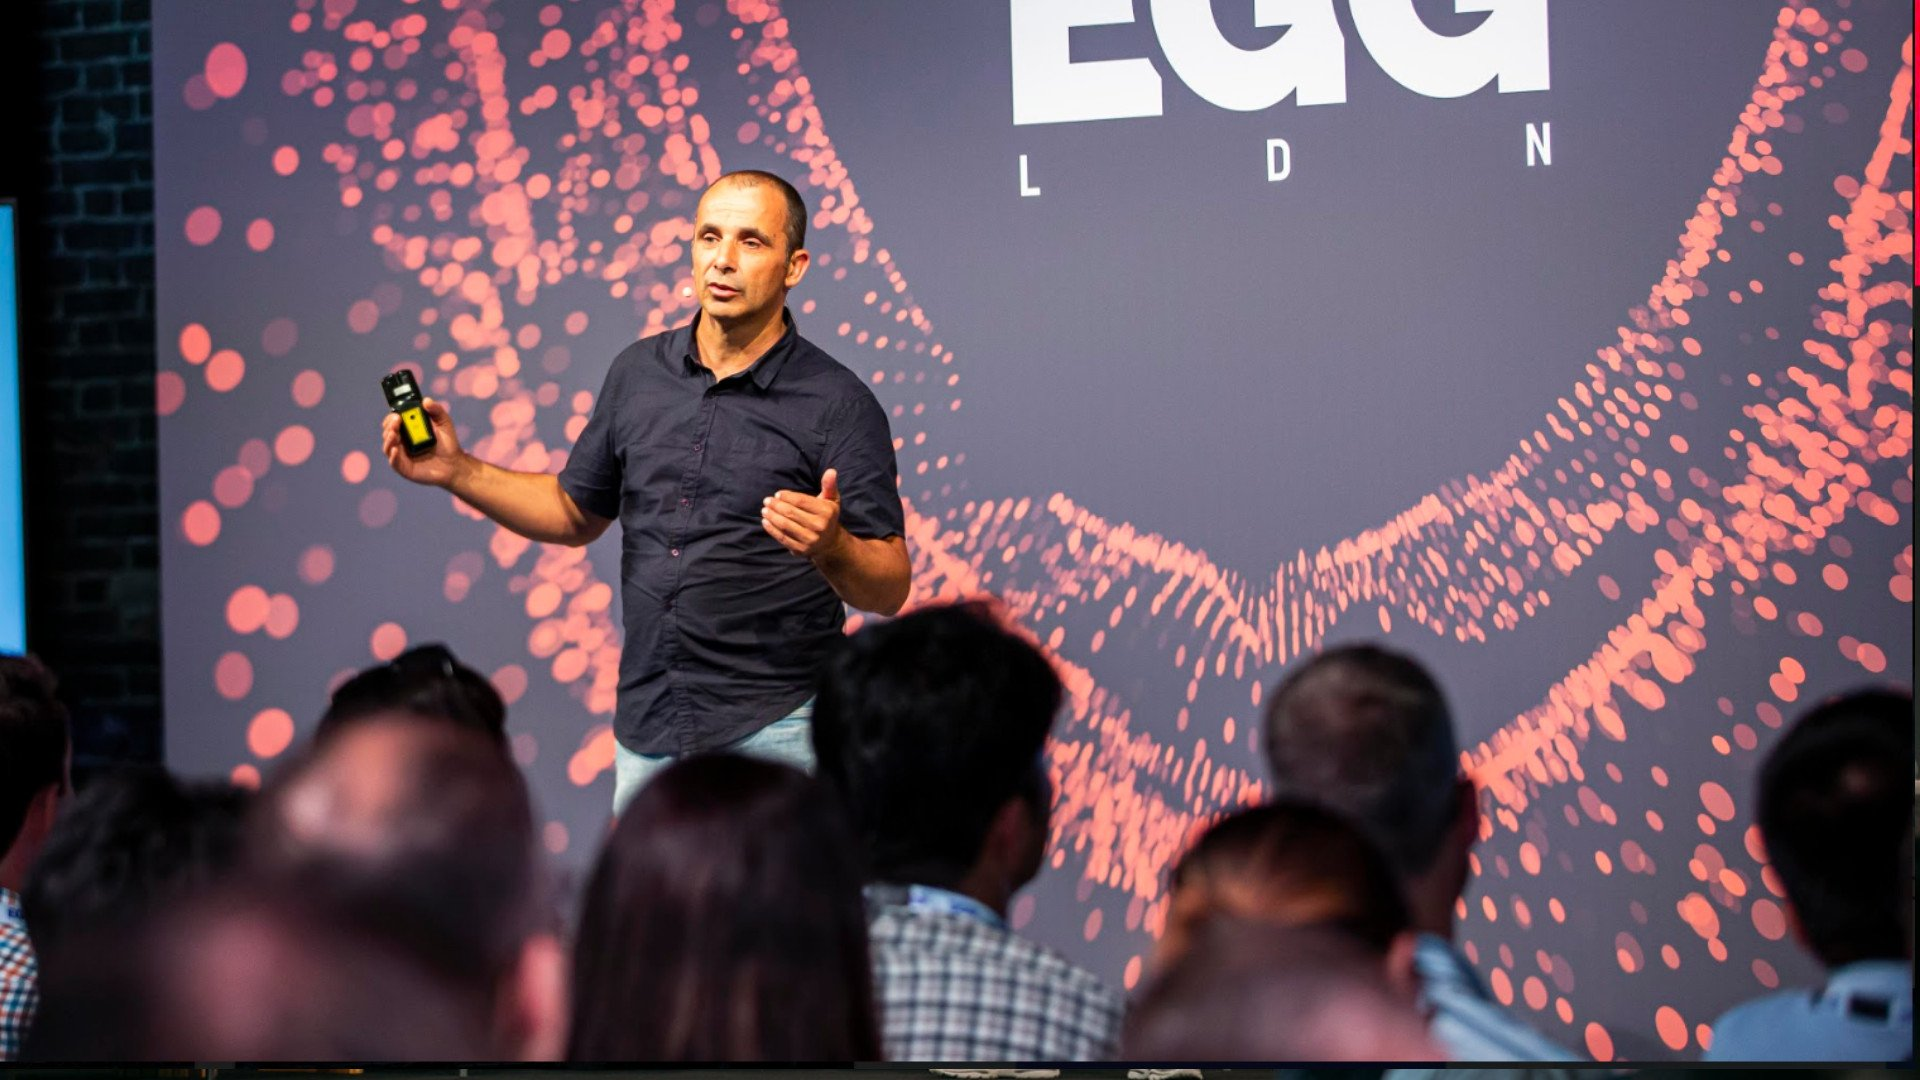 egg on air thumbnail Synthetic Data How do We Manage Them EGG LDN 2019-High-Quality